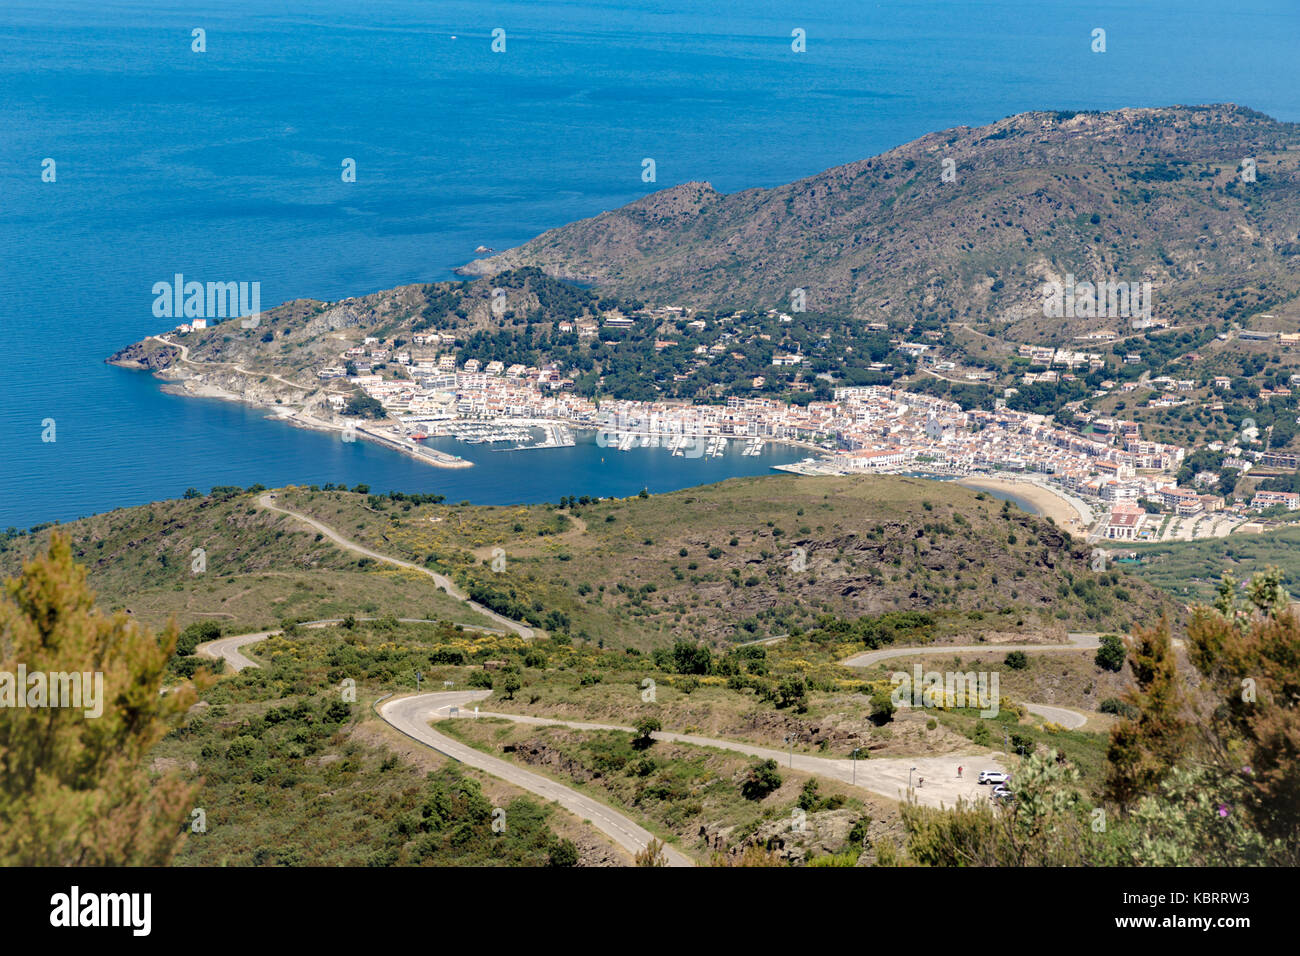 Spanish coastline city bay shot from top of the hill - Stock Image